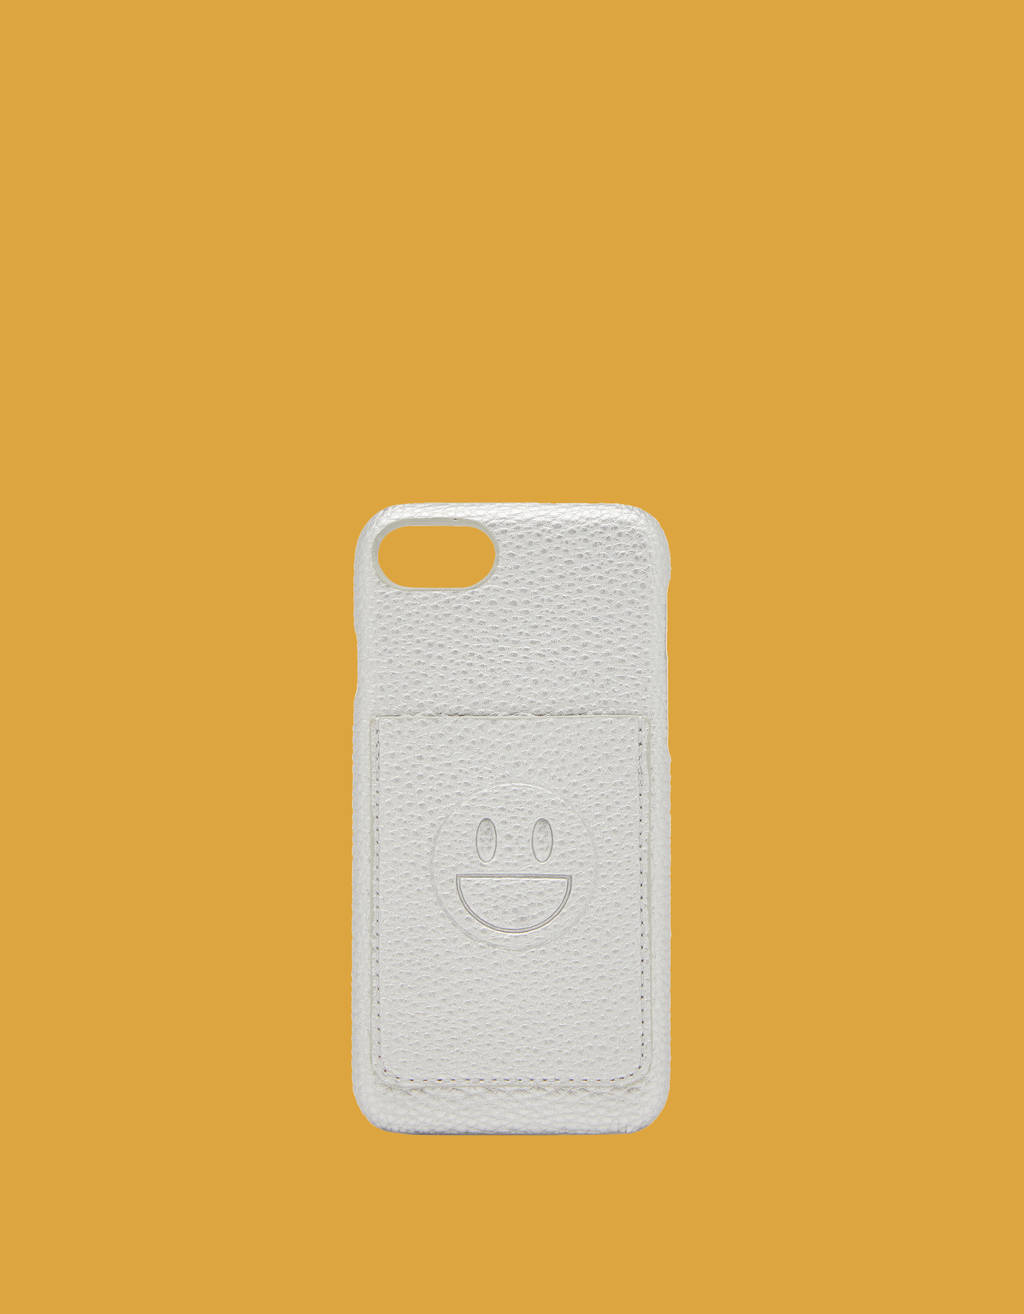 Smile case for iPhone 6 / 7 / 8